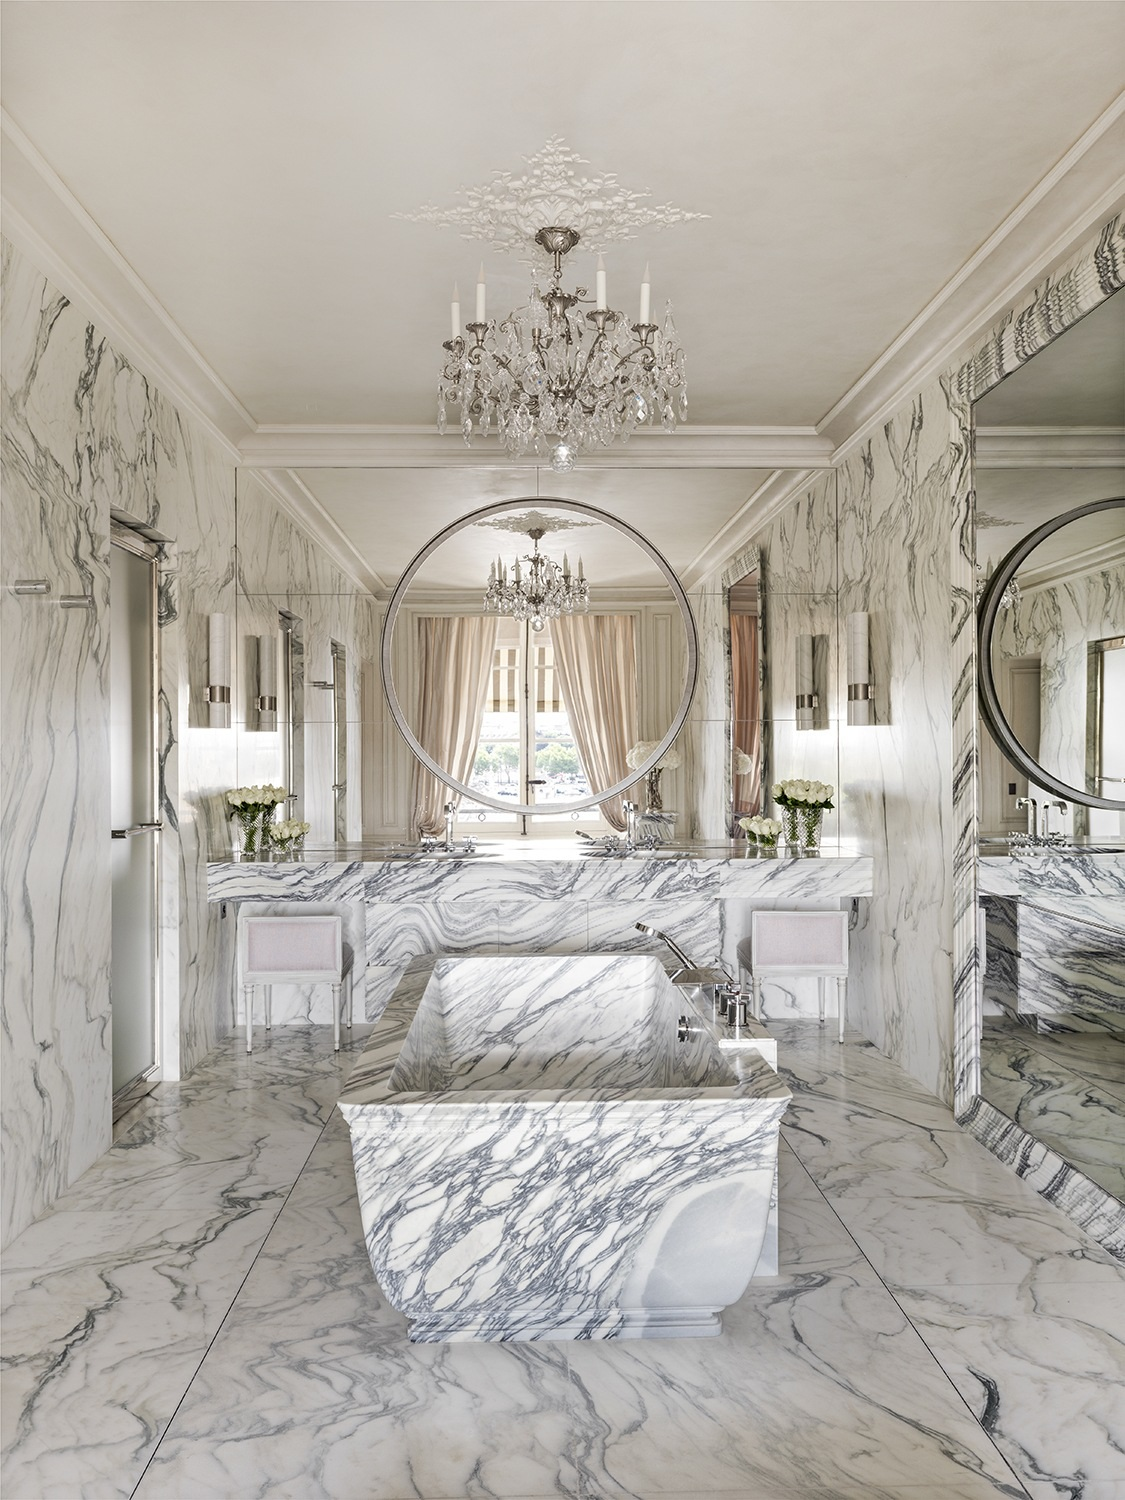 7 of the Most Luxurious Hotel Suites in Paris